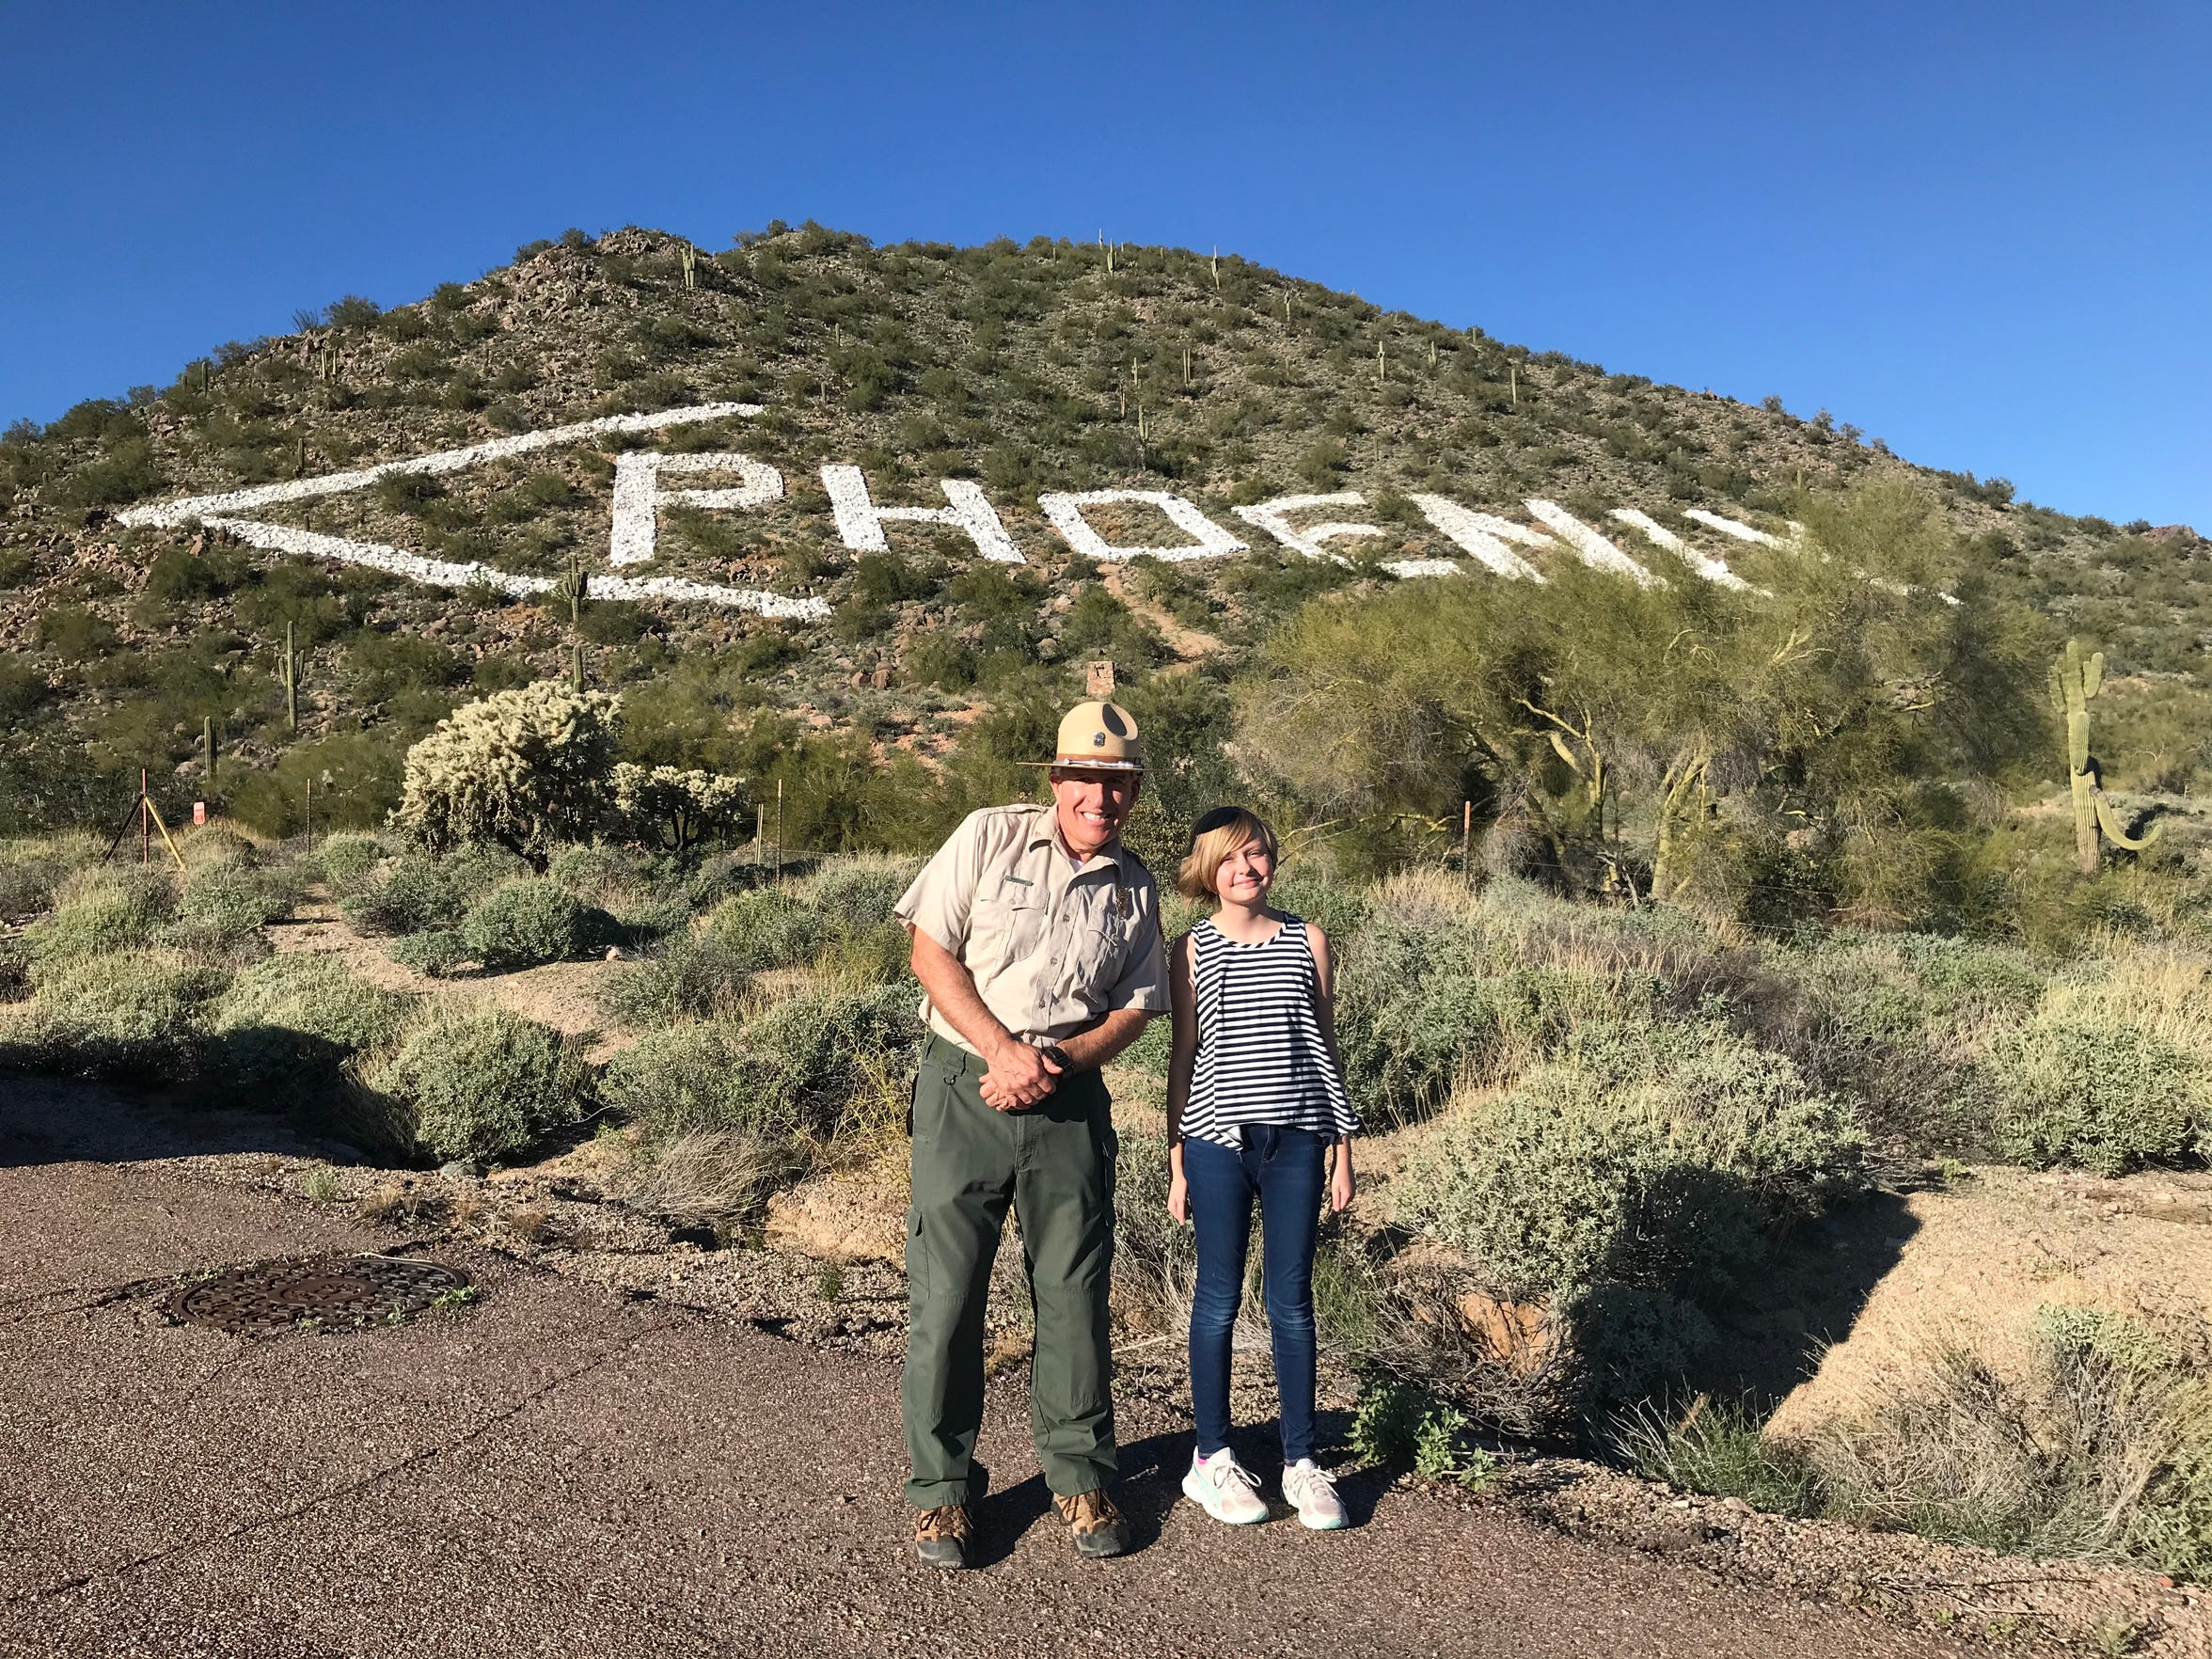 """Brennan Basler, aka """"Ranger B,"""" stands with Lucy Bentz, 12, at Usery Mountain Regional Park. Ranger B shared the story behind the """"<Phoenix"""" sign with Bentz for an episode of Valley 101, an Arizona Republic podcast about metro Phoenix."""